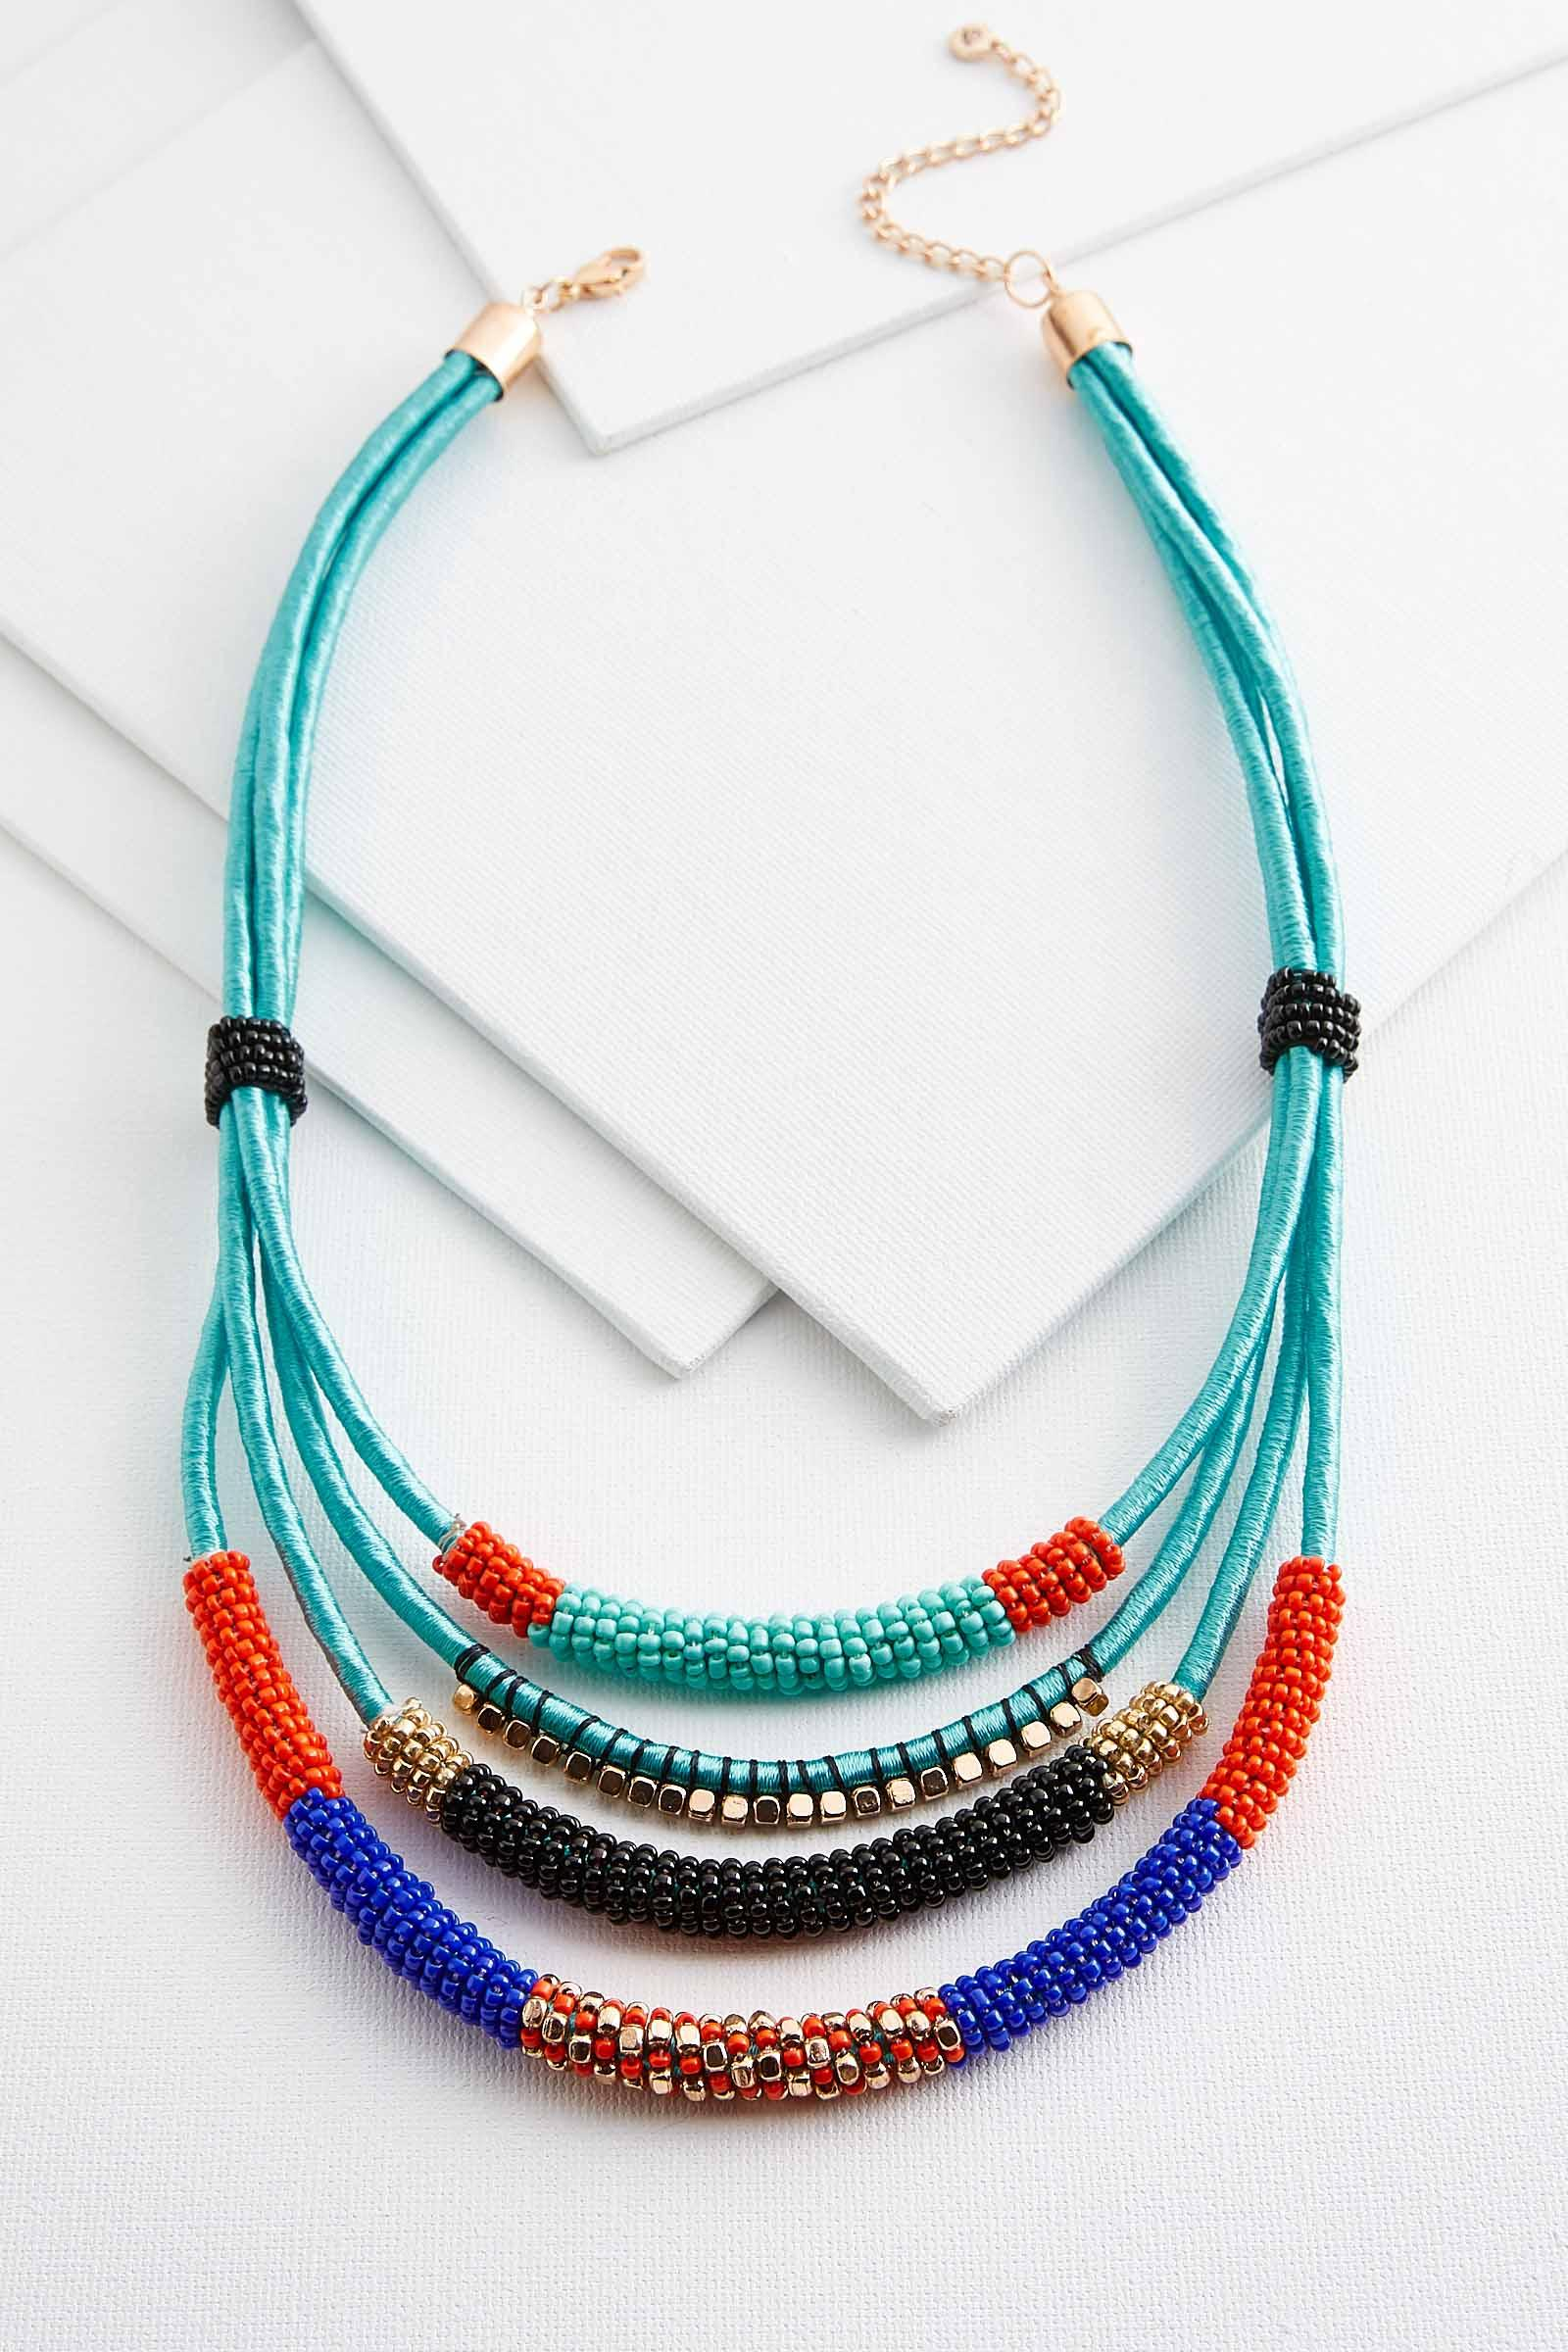 Layered Cord Seed Bead Necklace